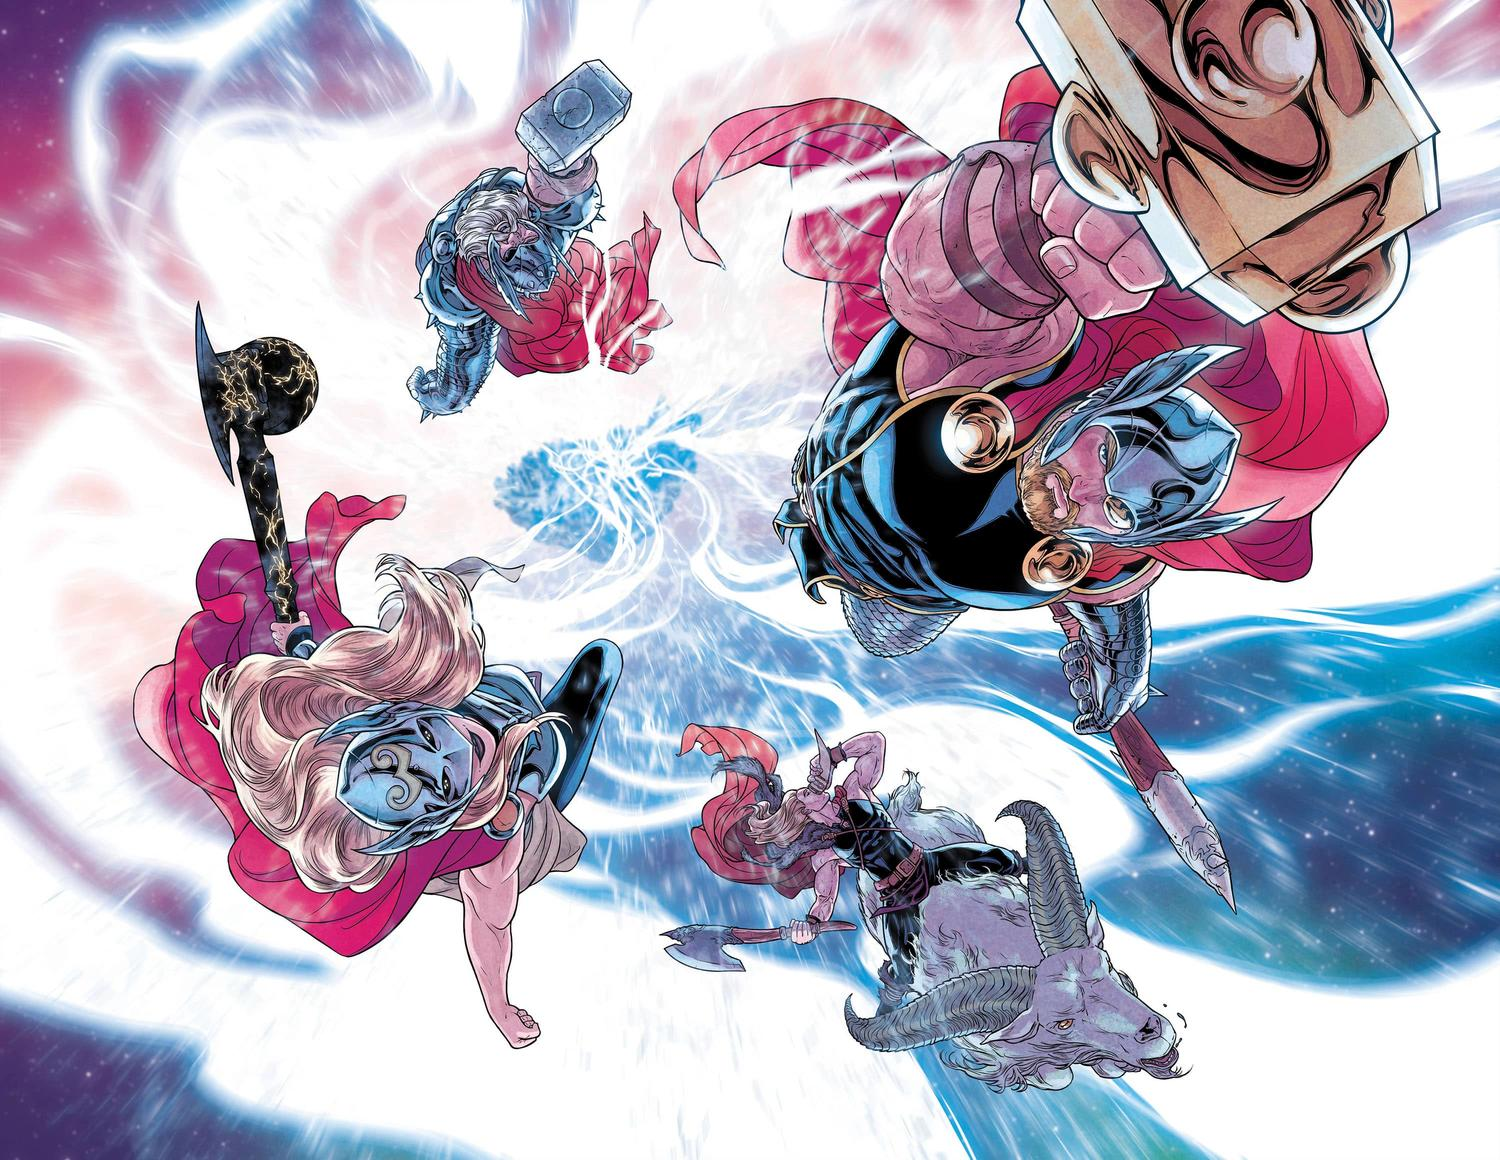 War of the Realms #6 Thors